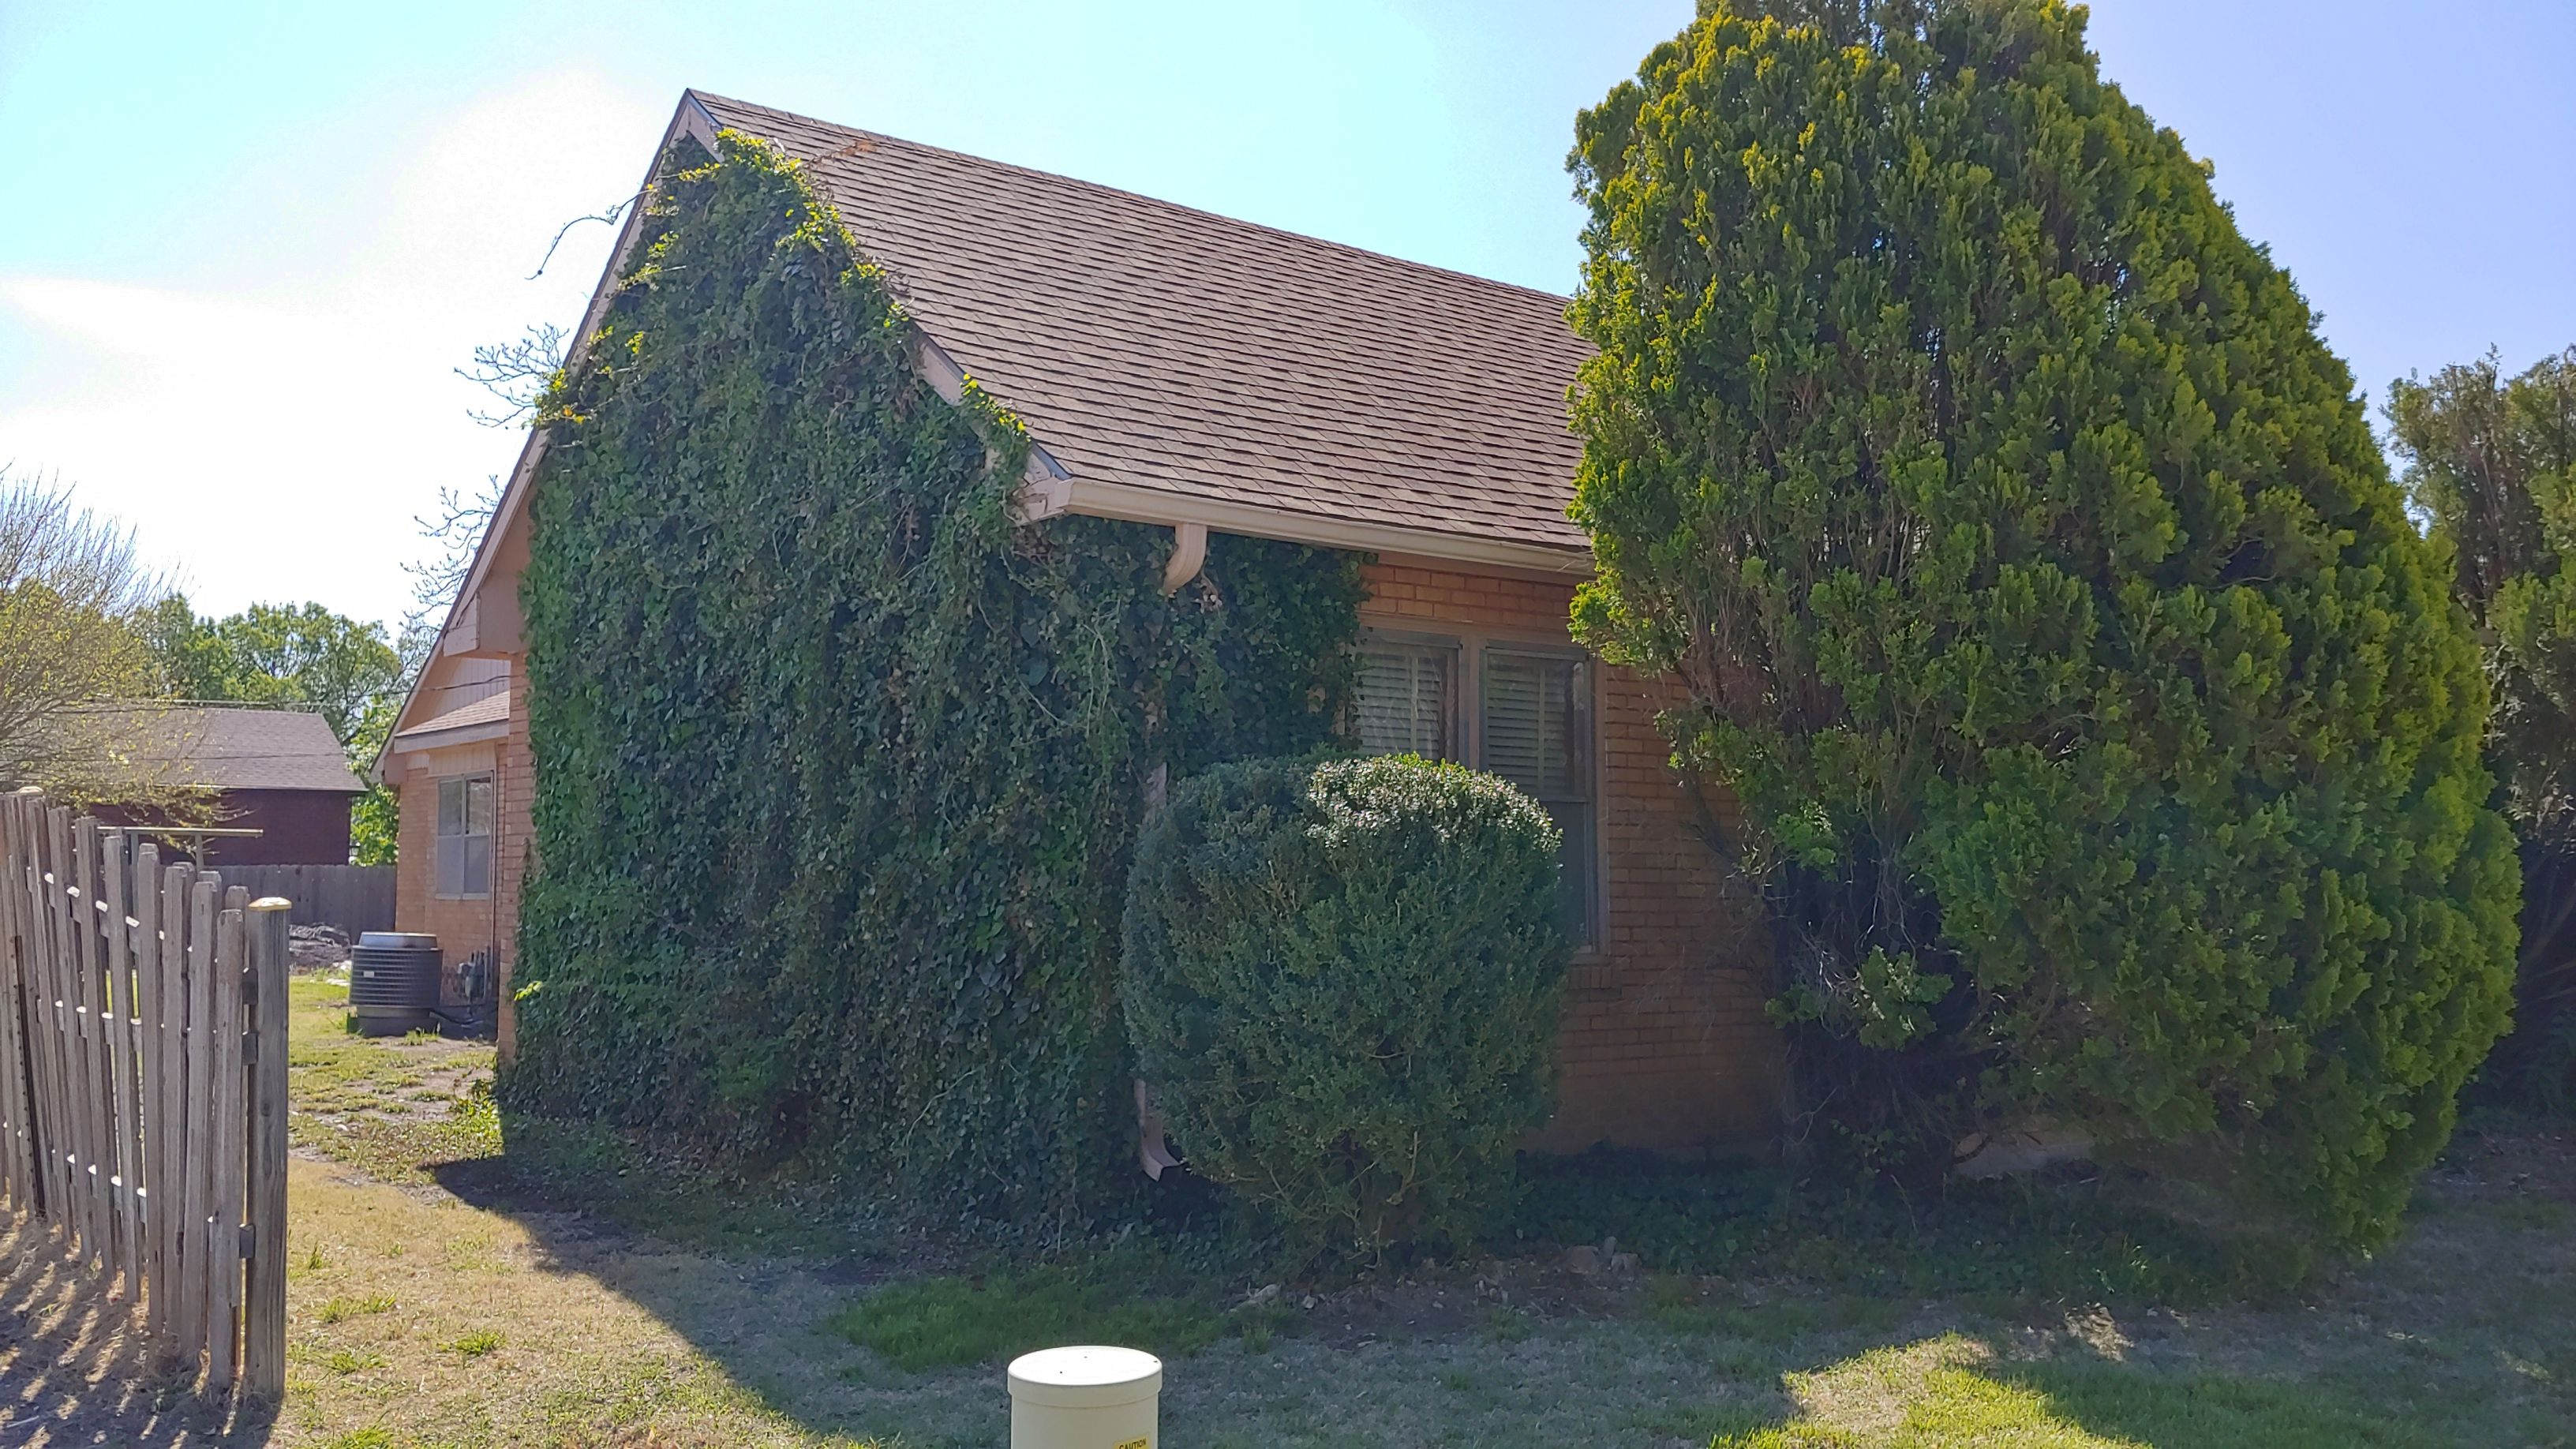 Item 2 in Real Estate and Personal Property Auction gallery